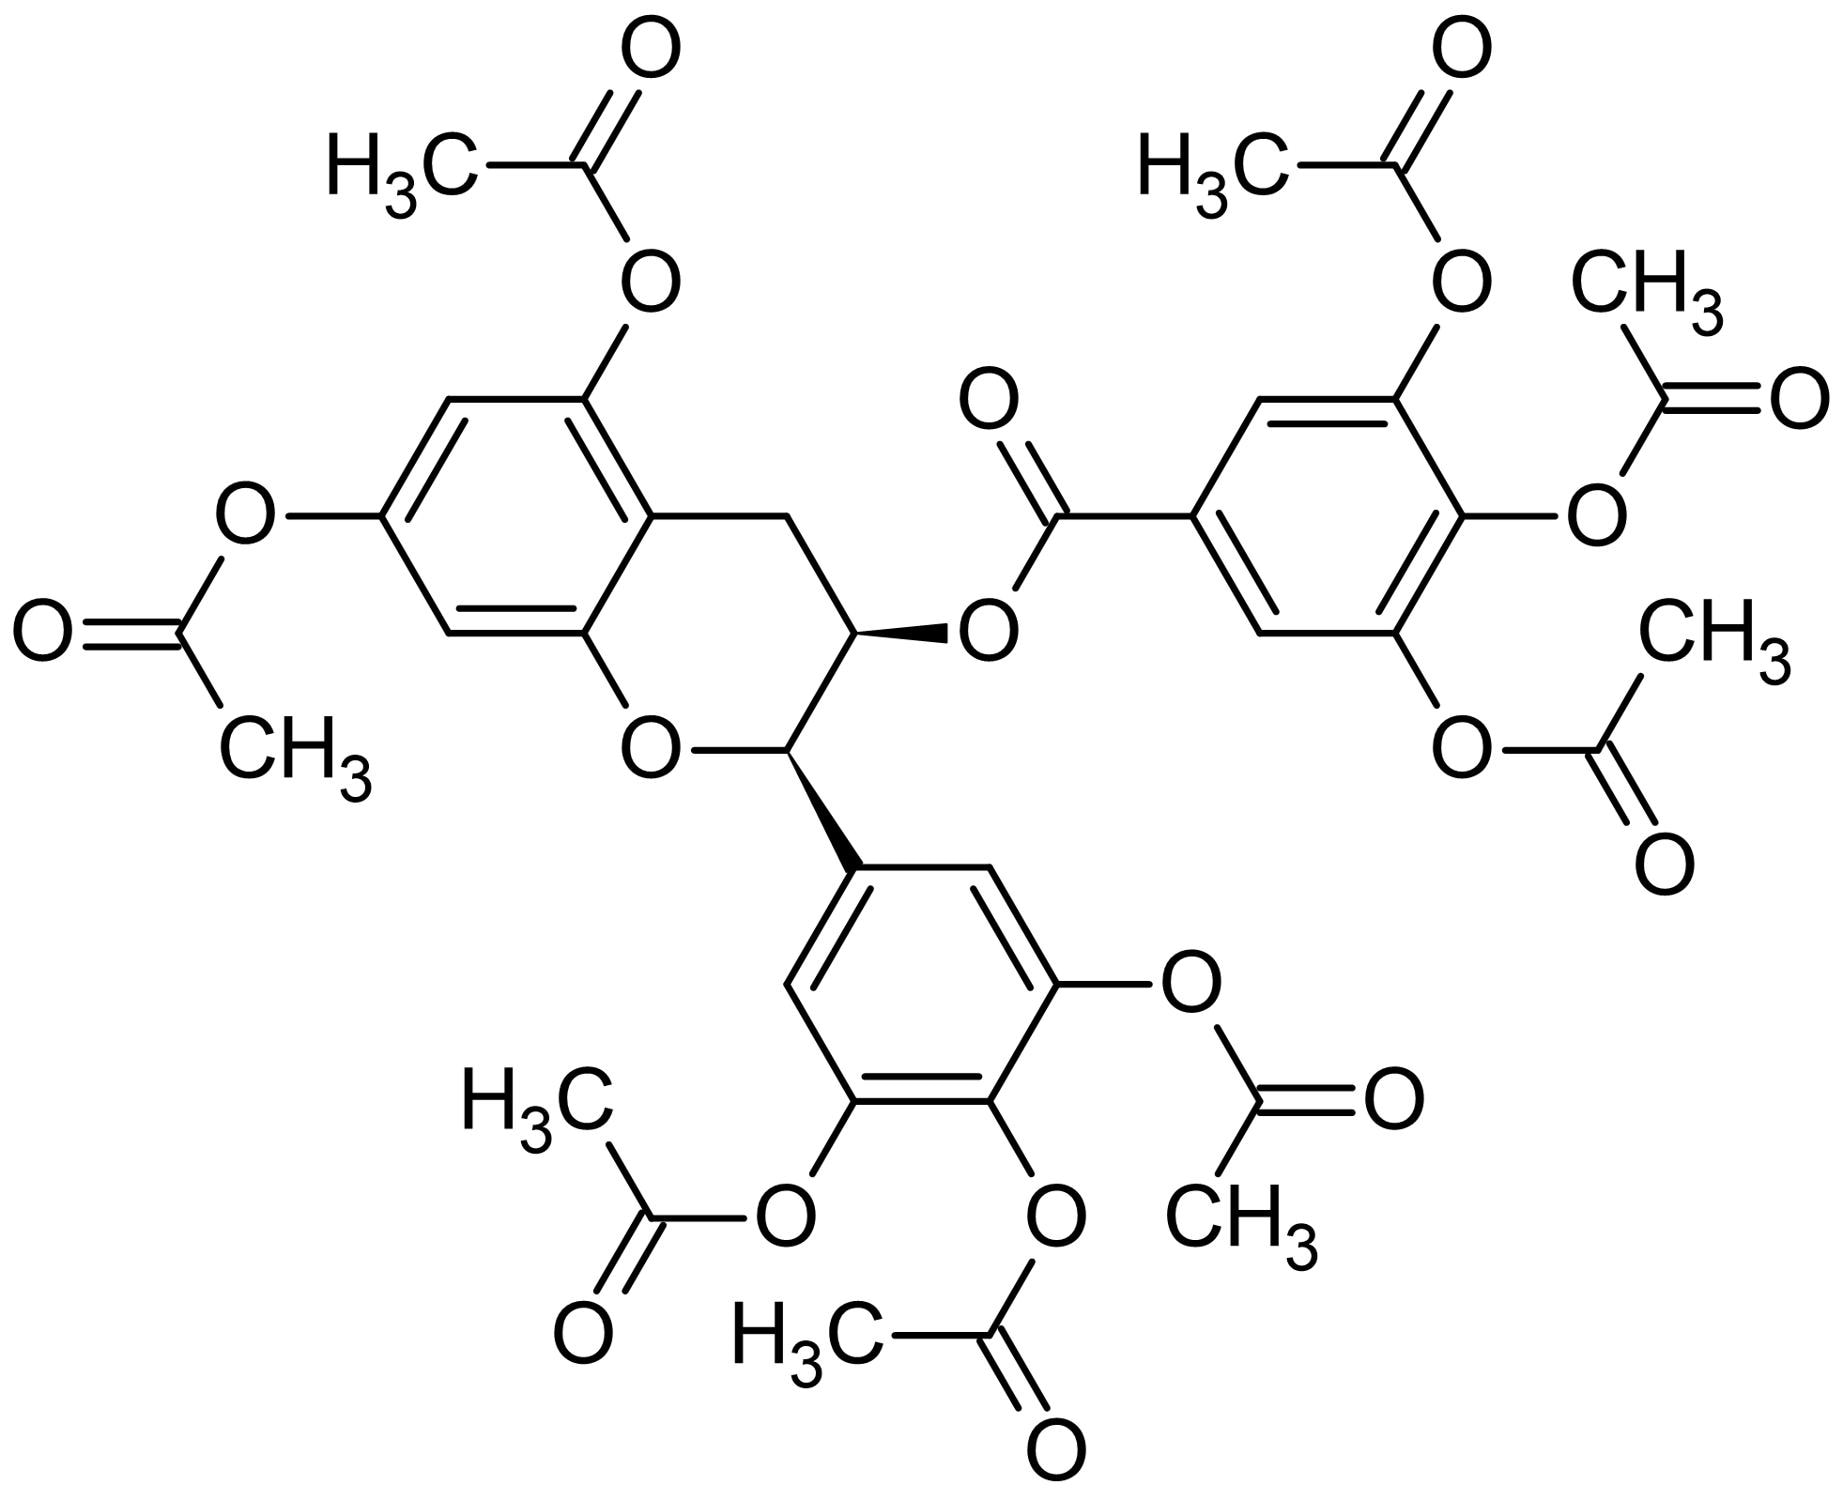 Chemical Structure - Epigallocatechin gallate octaacetate, Anticancer and antiangiogenic agent (ab145182)